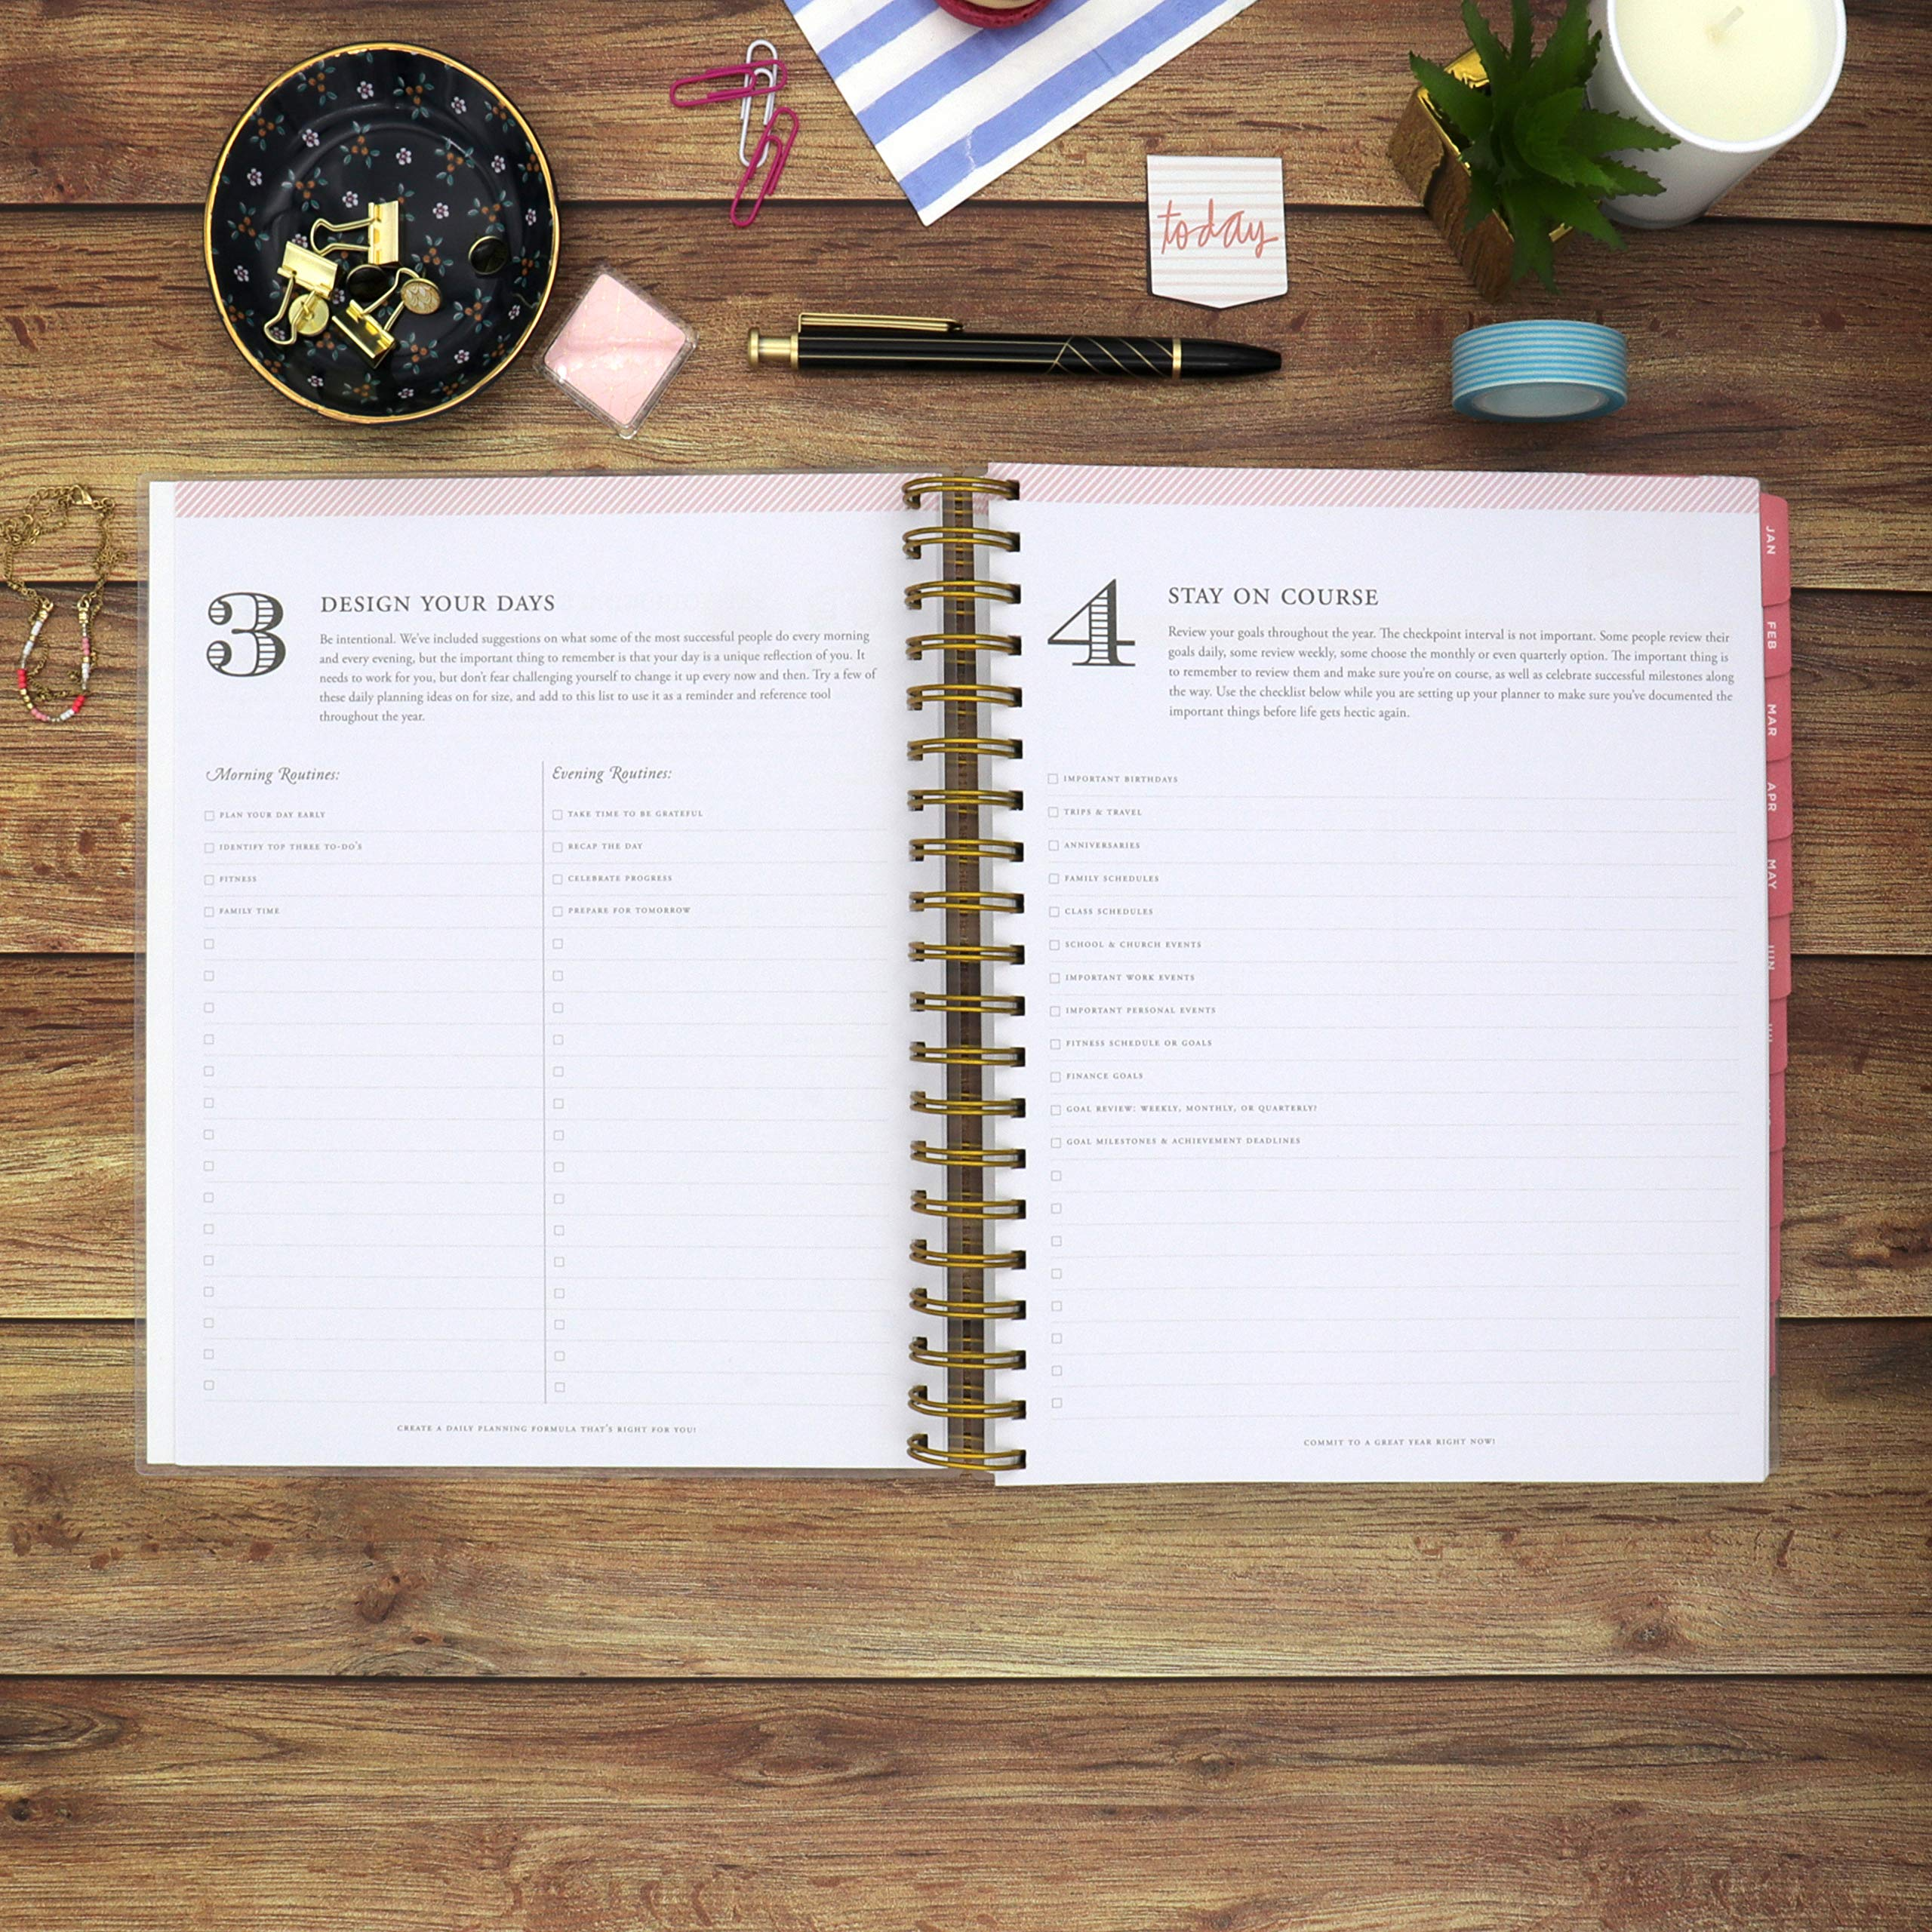 Navy Stripe Day Designer for Blue Sky 2020 Daily /& Monthly Planner Frosted Flexible Cover 8 x 10 Twin-Wire Binding